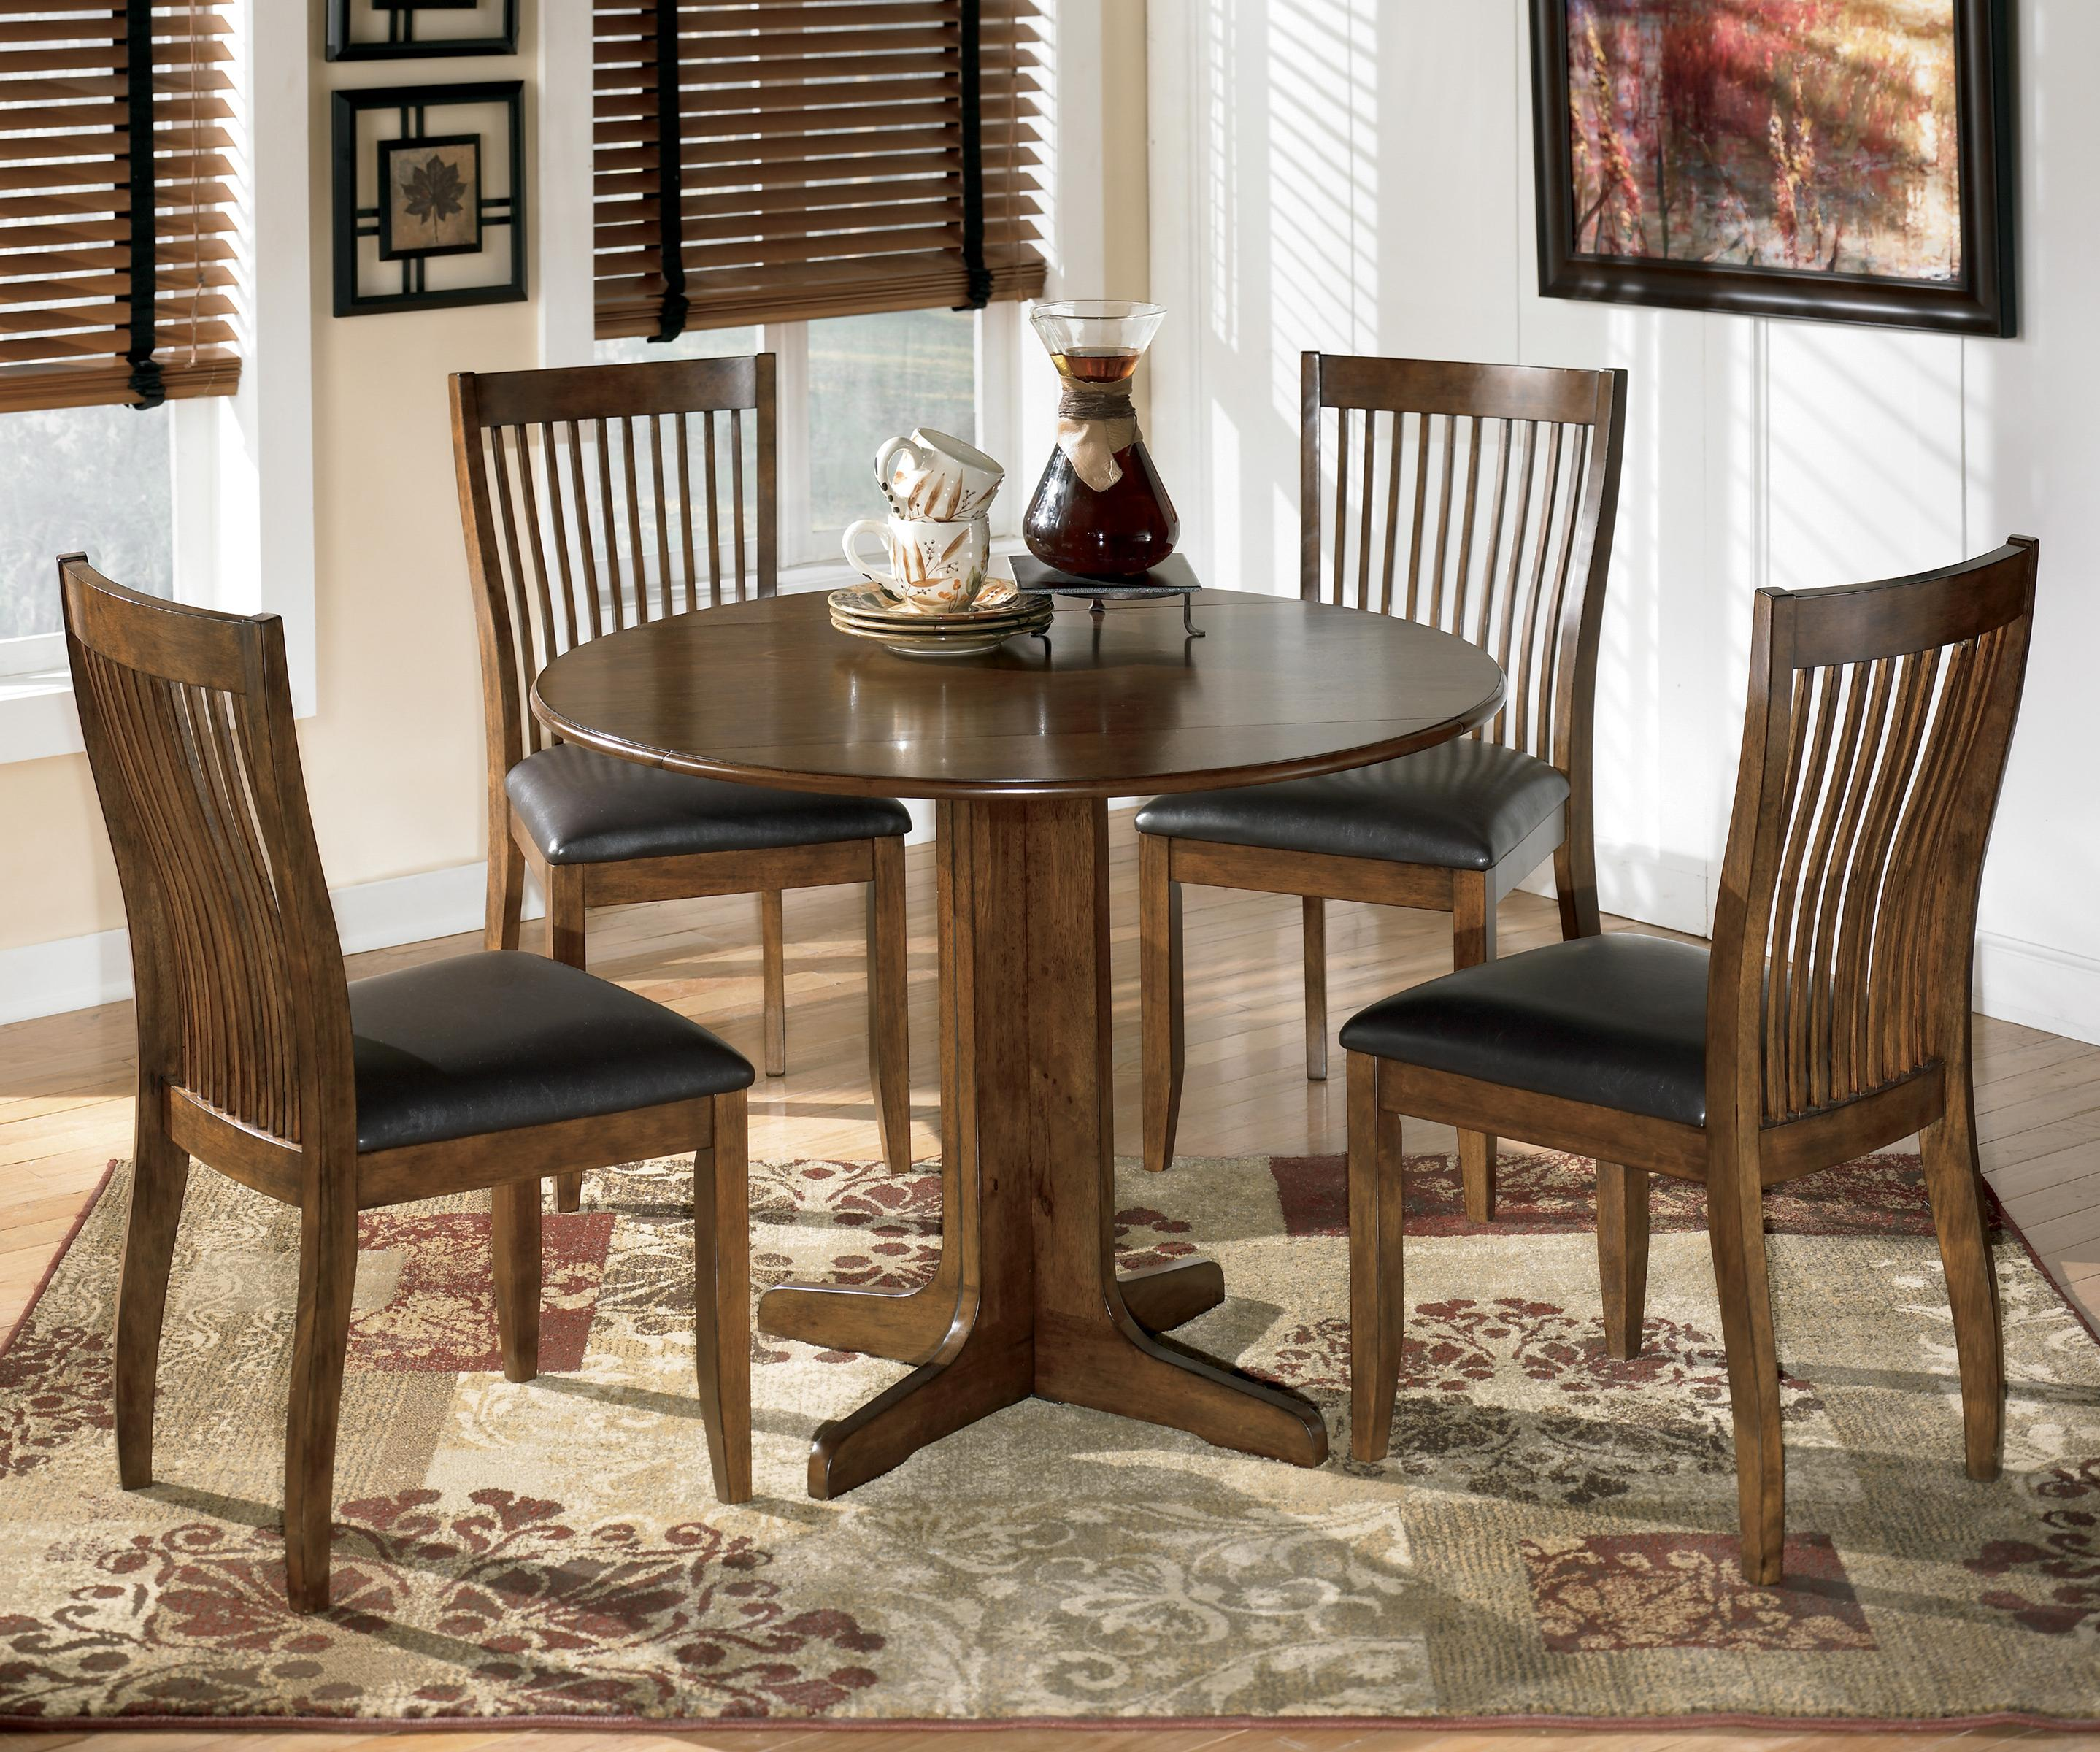 Stuman 5-Piece Round Drop Leaf Table Set by Signature Design by Ashley at Godby Home Furnishings